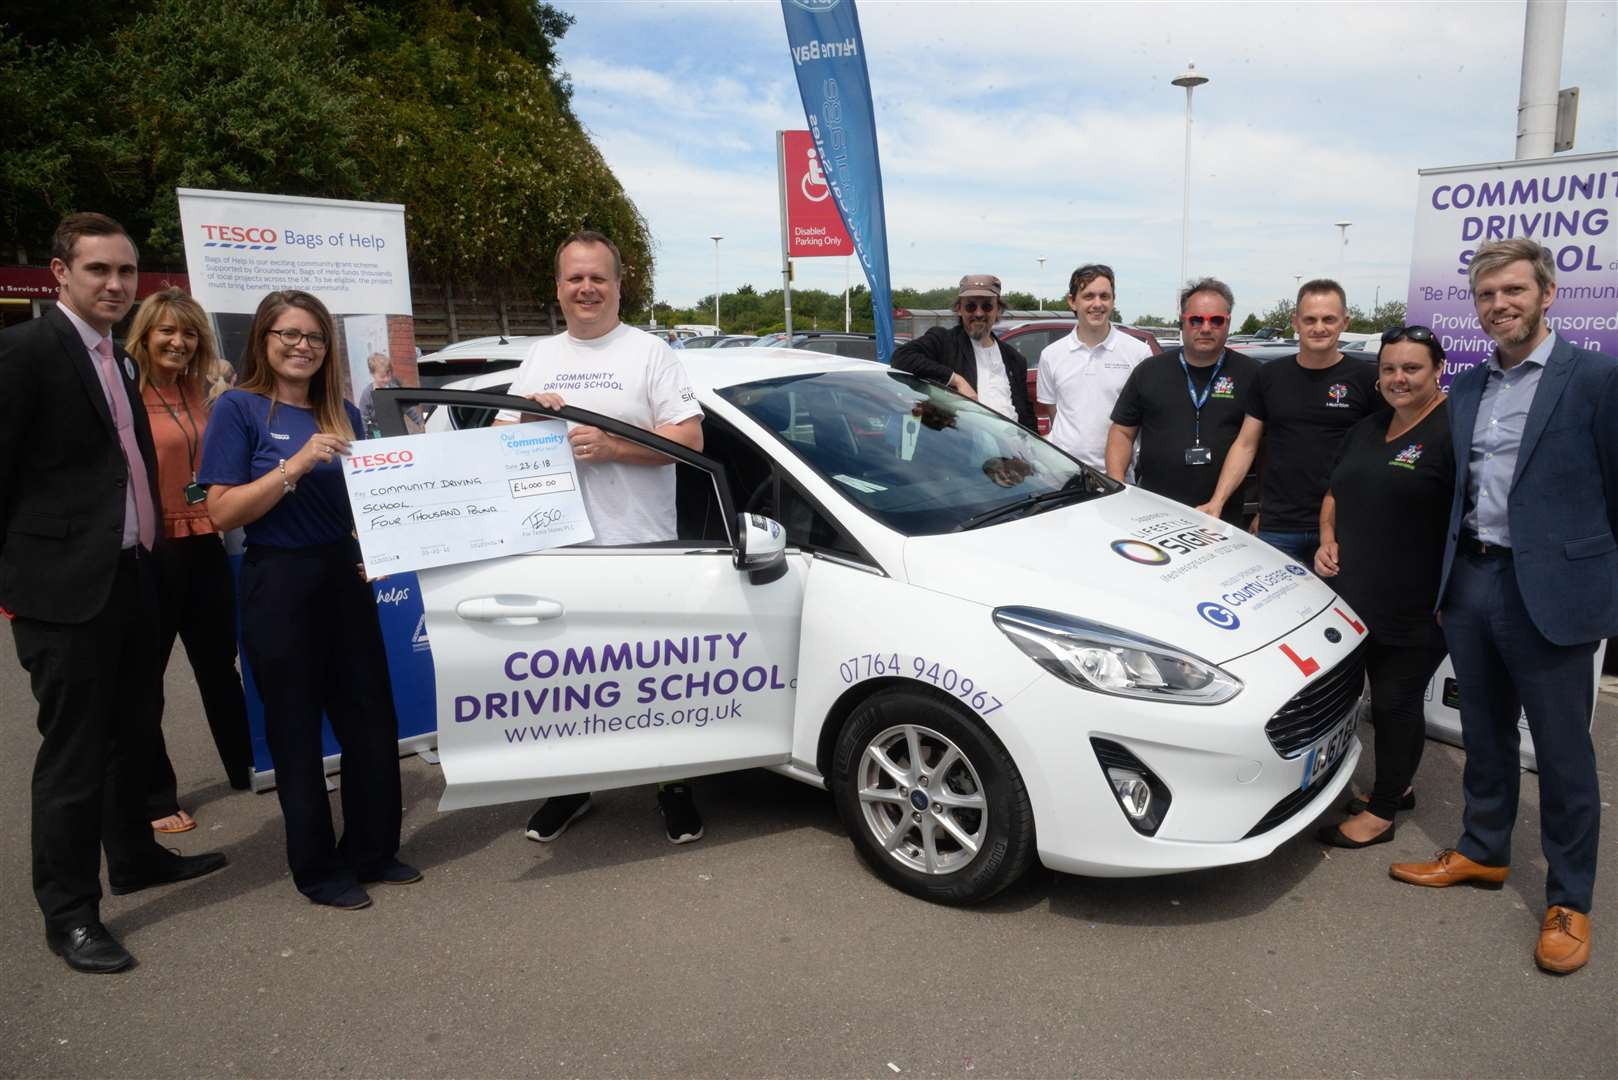 Loisa Dane, Community Champion at Tesco presents John Nicholson with a new car and a cheque for £4000